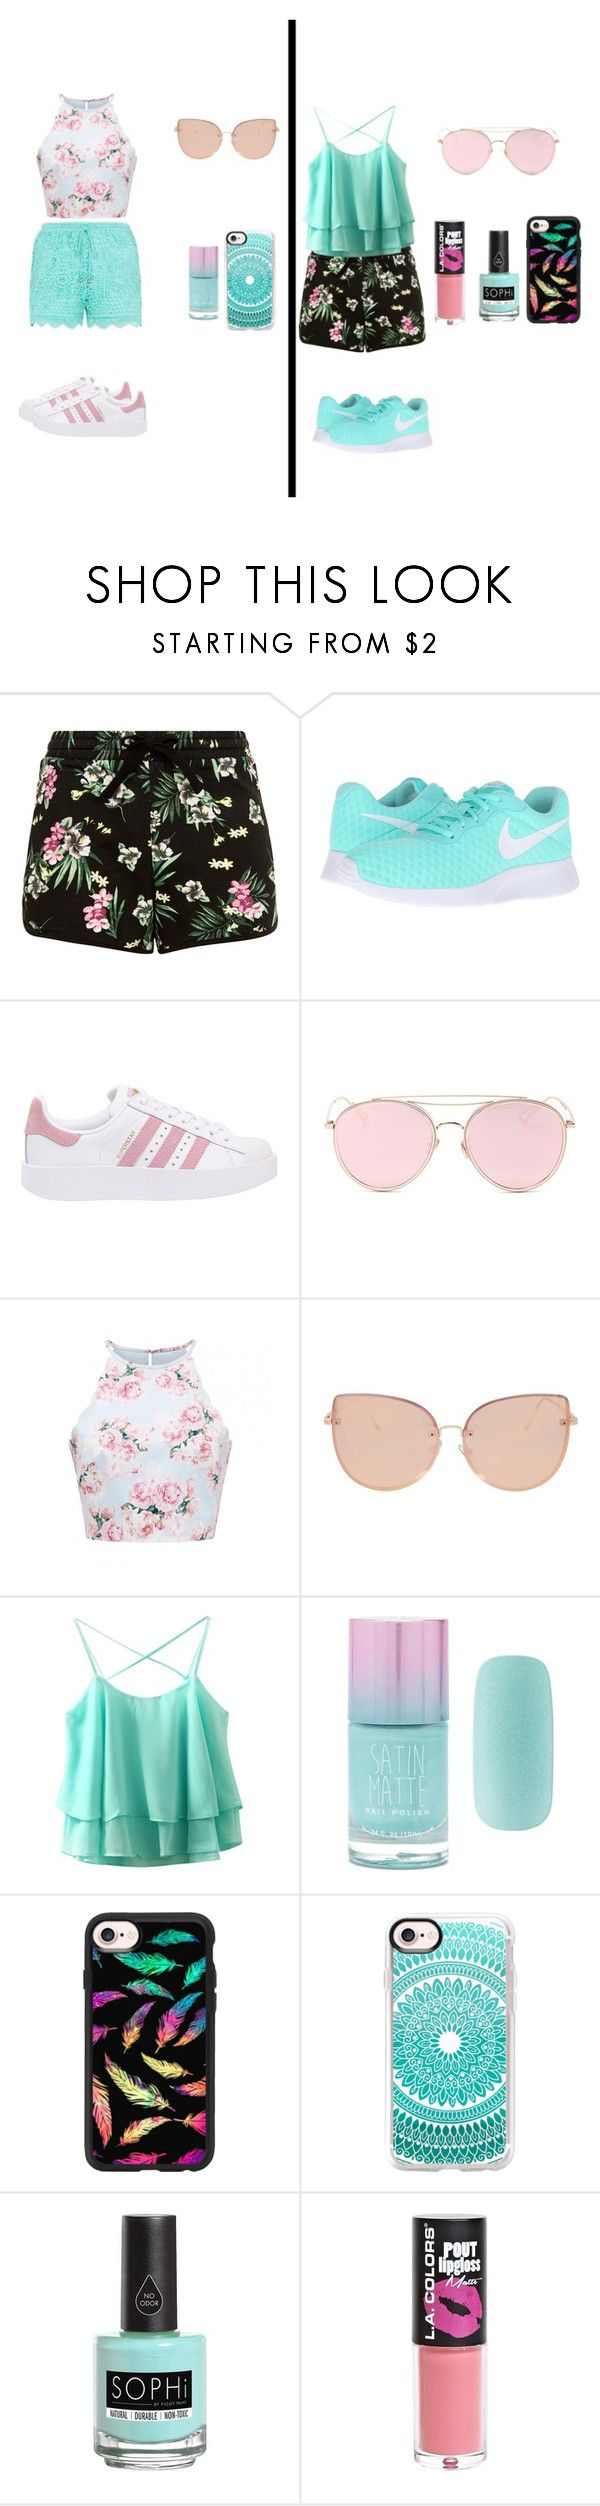 """Linda combinacion"" by noguerarosangel on Polyvore featuring moda, NIKE, adidas Originals, LMNT, Topshop, Forever 21, Casetify, Piggy Paint y L.A. Colors"